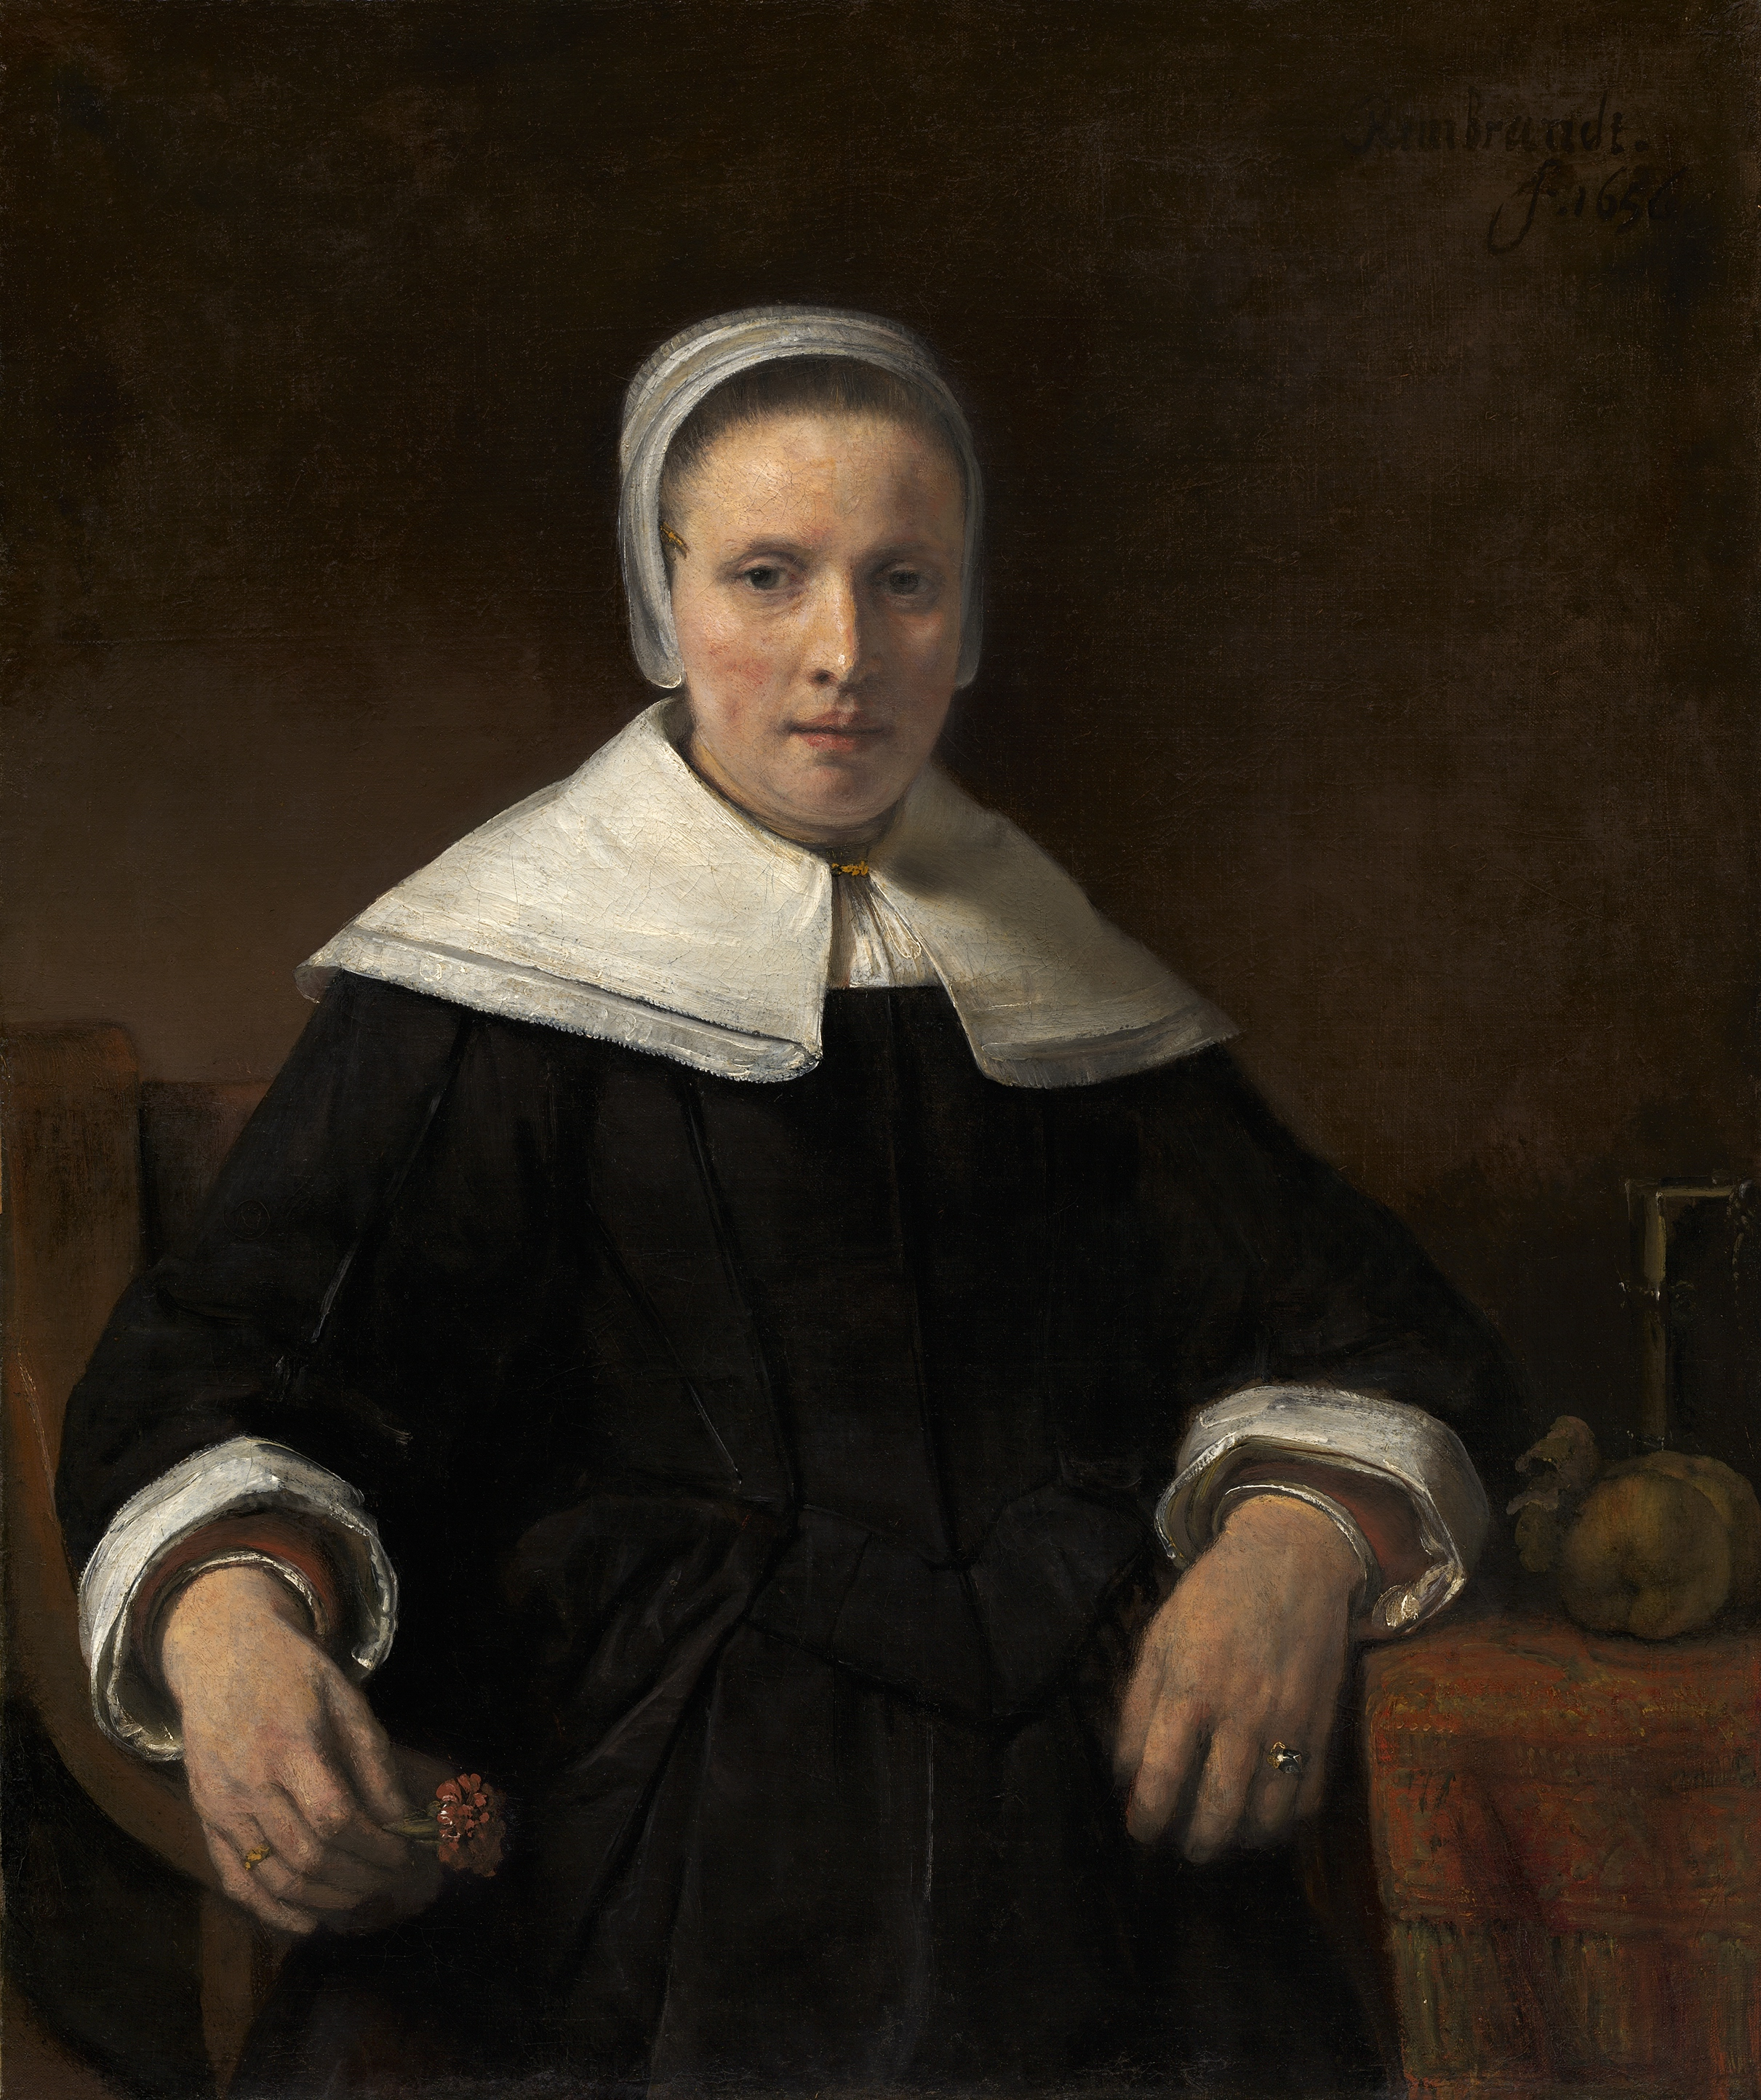 anne bradstreet and mary rowlandson Anne bradstreet (1612â€1672) wrote lyrical, religious and personal poetryshe is the  mary rowlandson a narrative of the captivity summary pdf epub mobi.